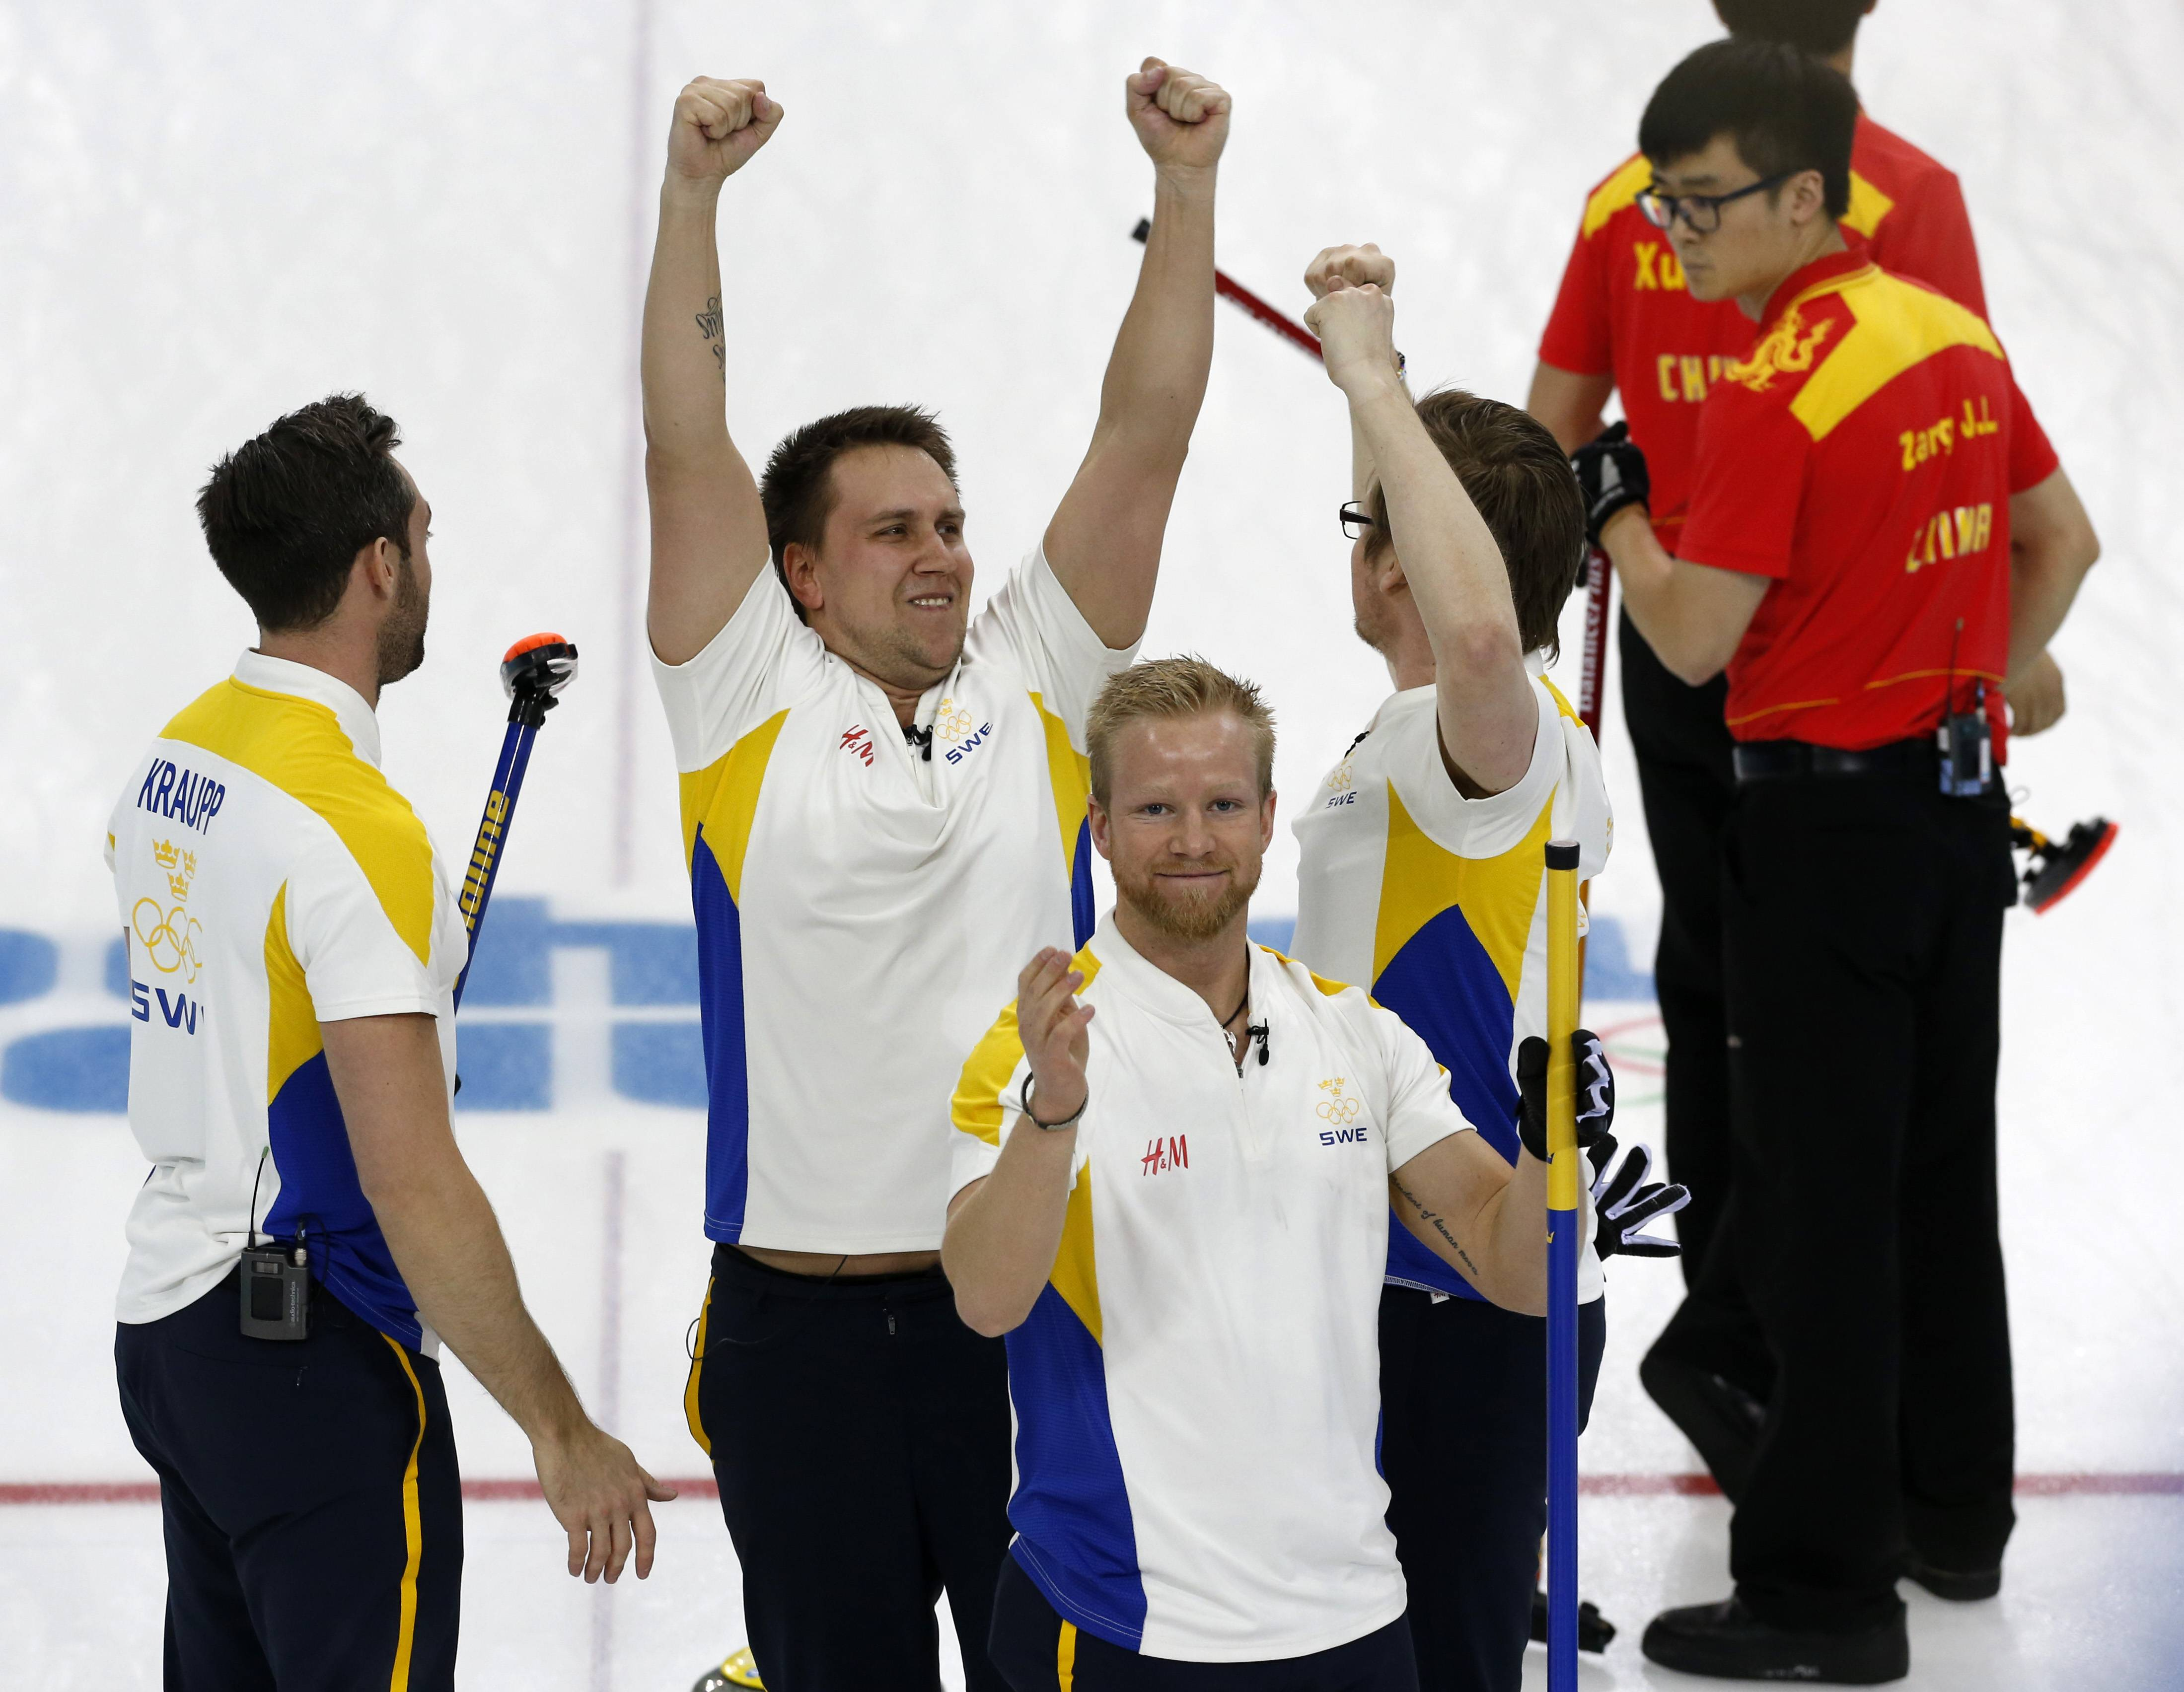 Sweden's player from left, Sebastian Kraup, Fredrik Lindberg, Niklas Edin, and Viktor Kjaell celebrate Friday following their victory over China in the men's curling bronze medal game at the 2014 Winter Olympics in Sochi, Russia.